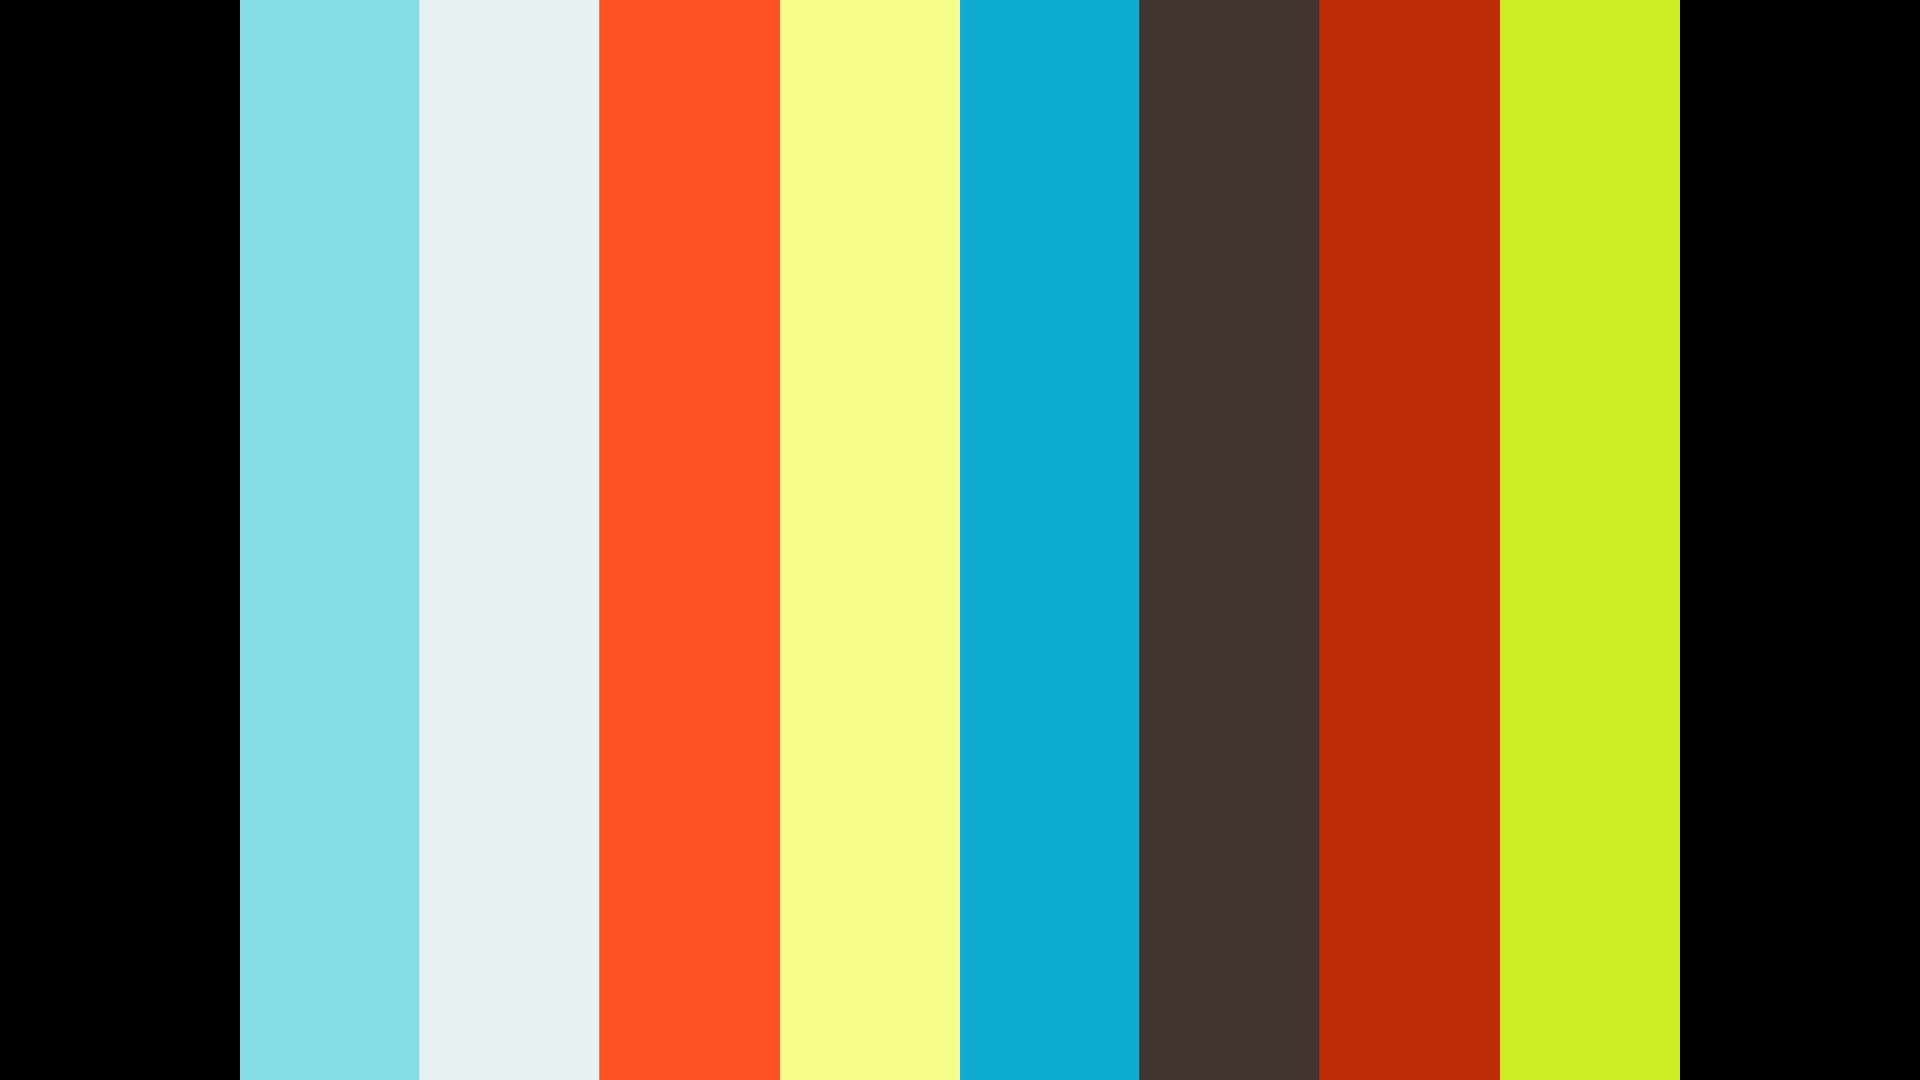 IrieRadio - Best Of Hip Hop May 2013 Video Mix